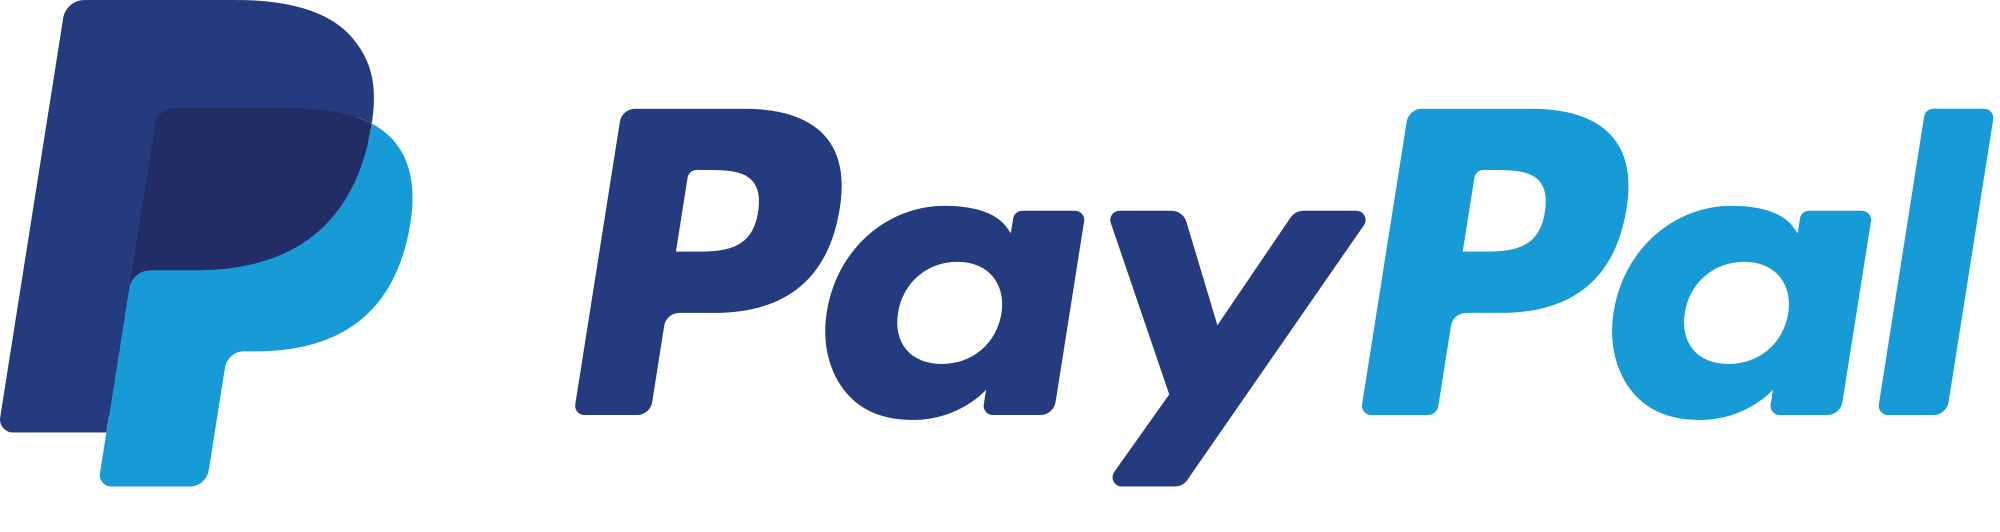 Paypal images png. File svg wikimedia commons